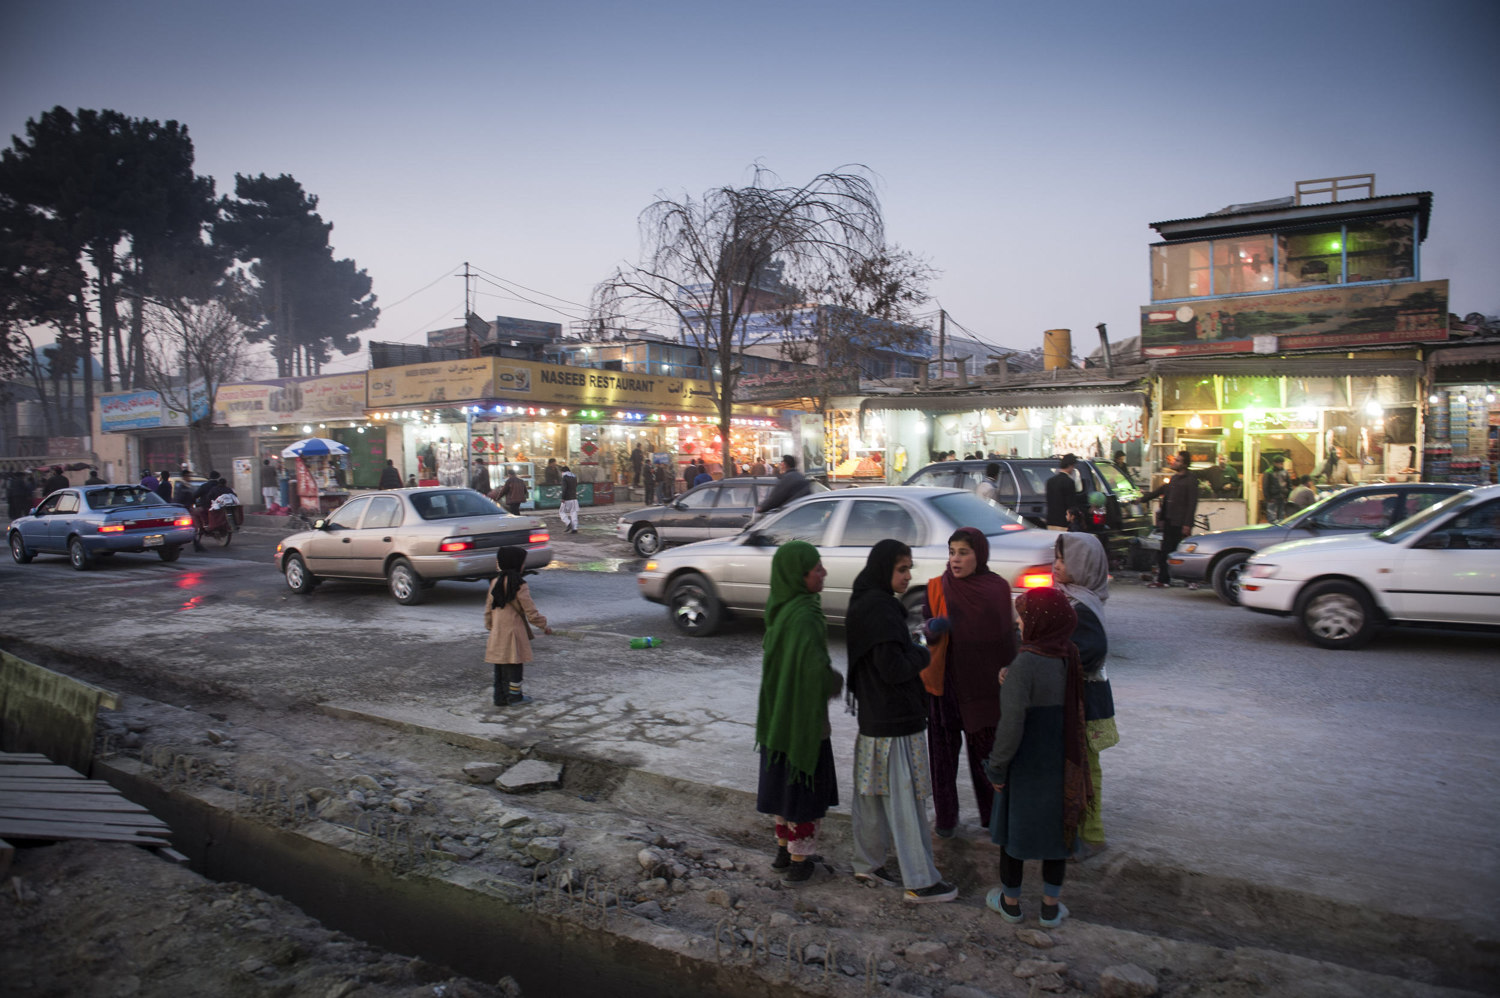 Girls on the street in the upscale Shar-e-now section of Kabul. There are many restaurants in the area featuring separate seating sections for men and women.